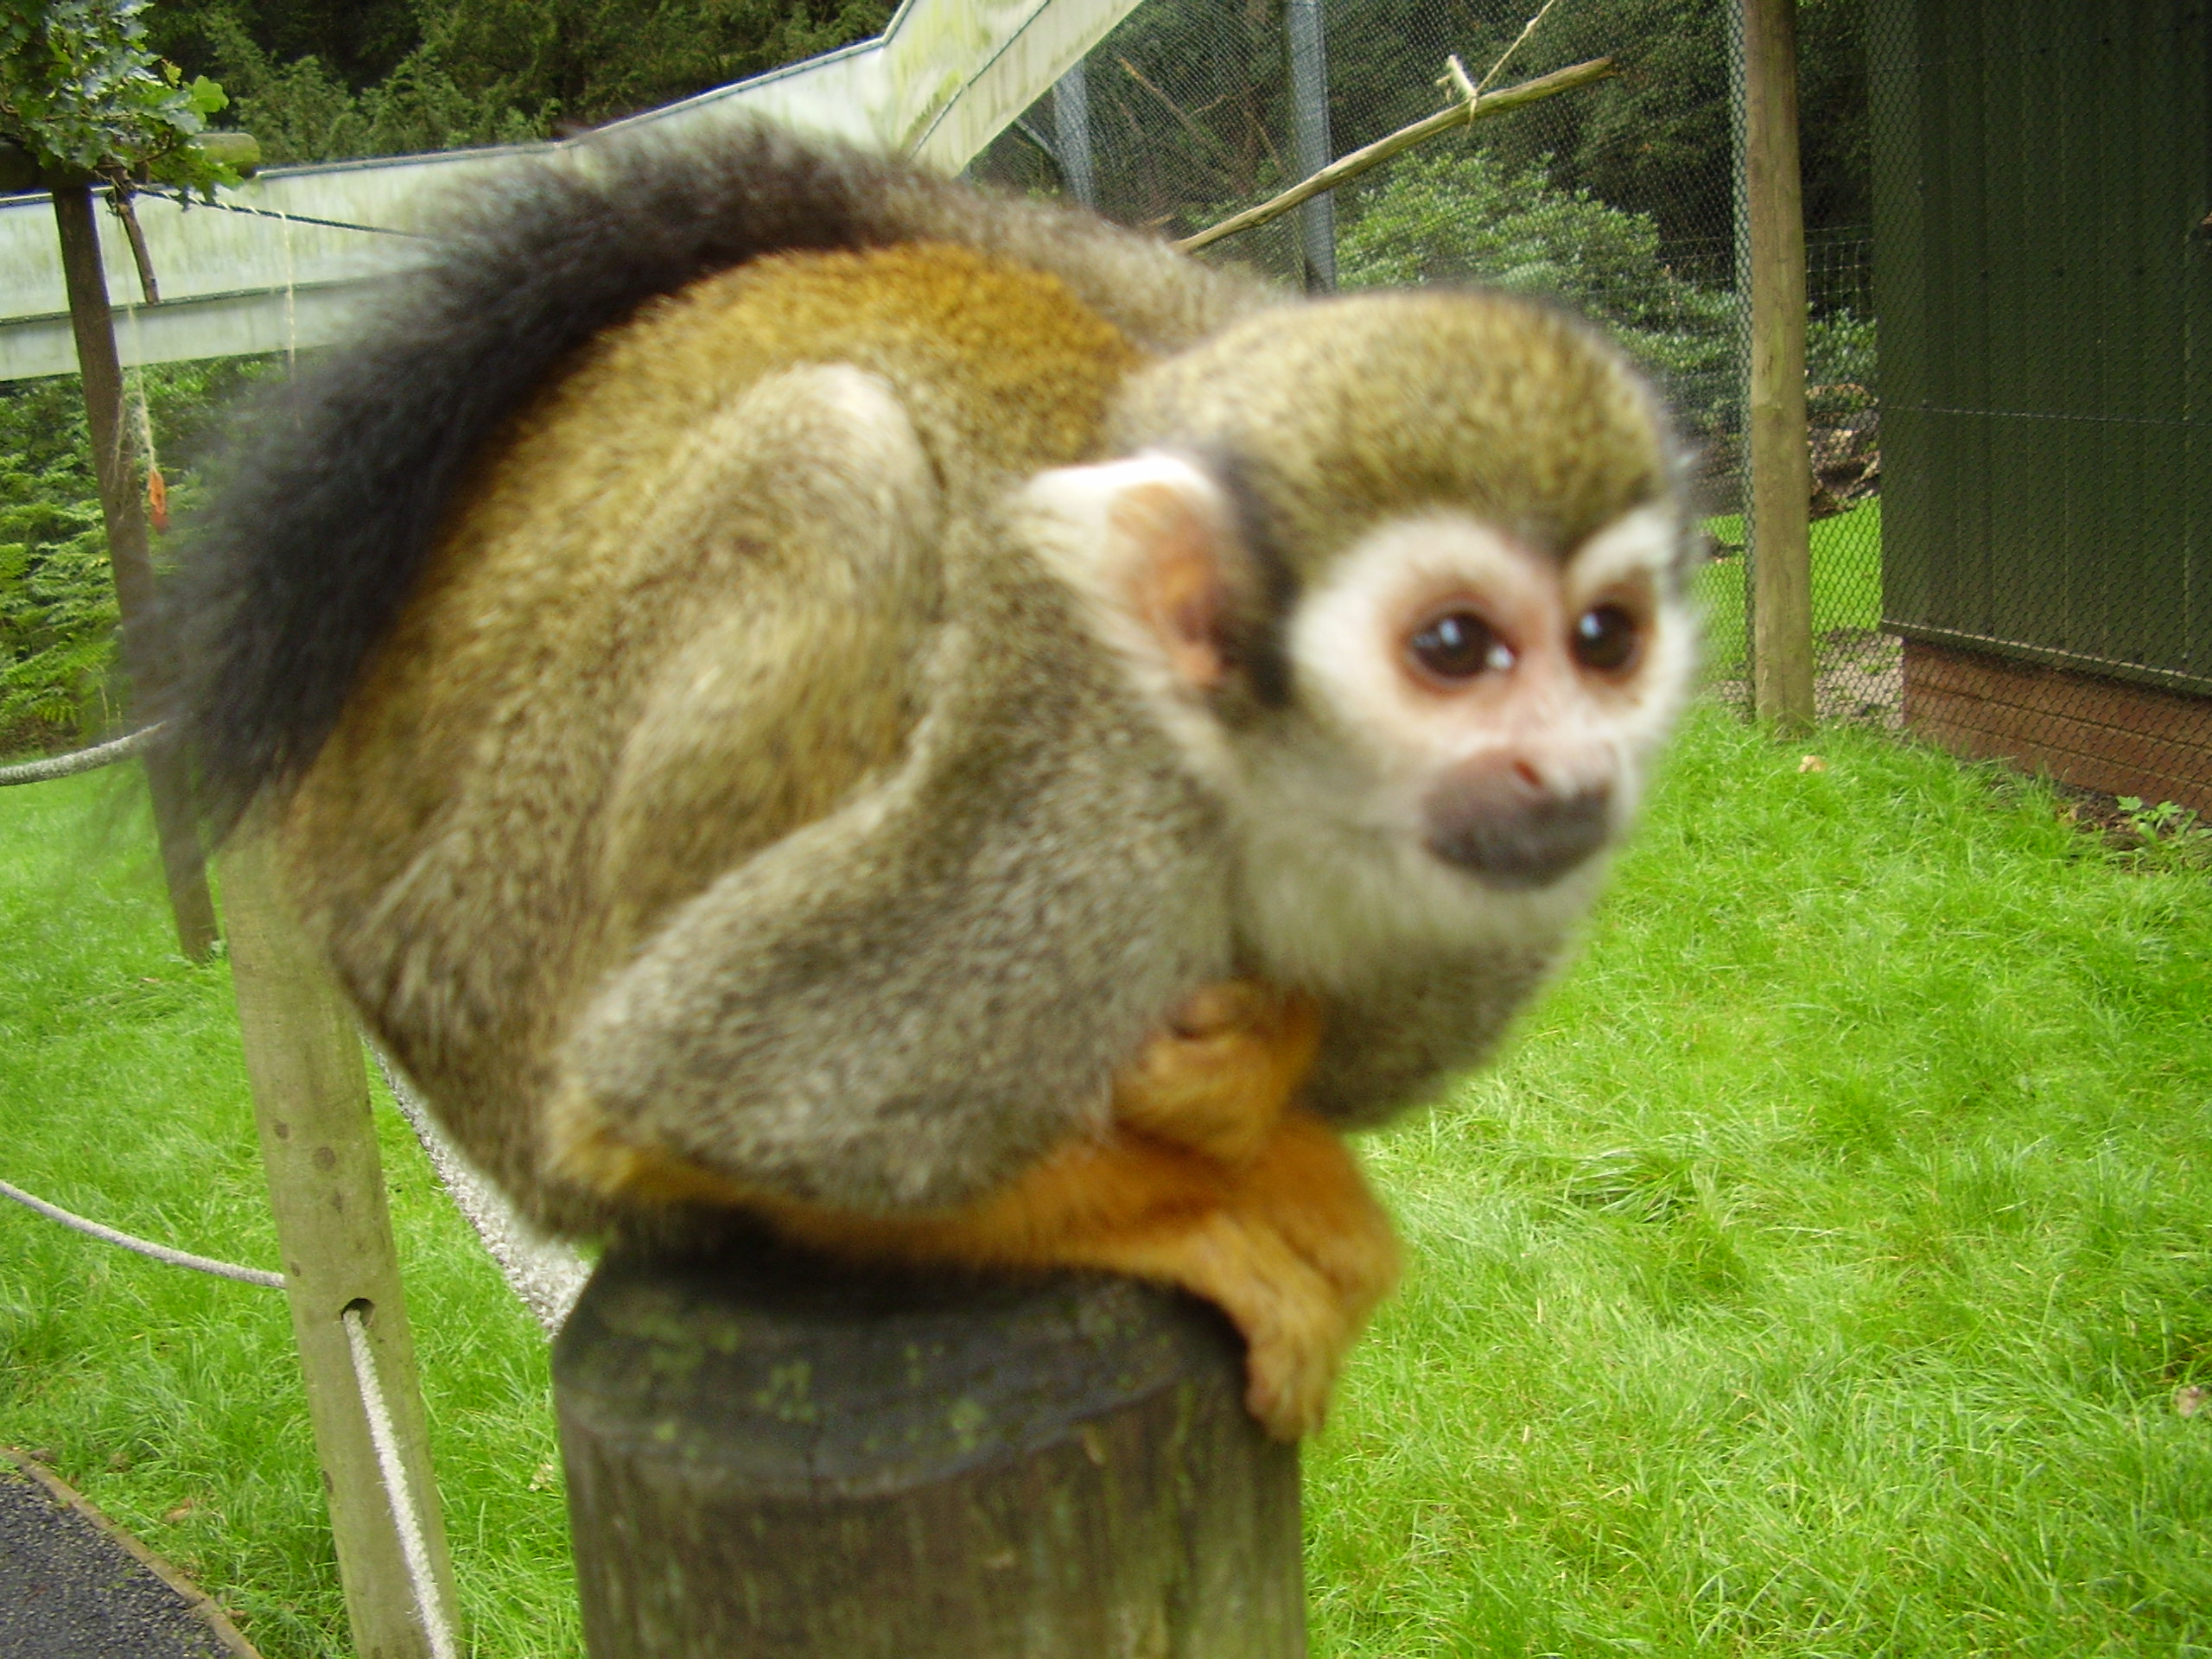 squirrel monkeys Jungle friends provides permanent sanctuary for monkeys retired from research, ex-pets, or monkeys who were confiscated by the authorities.